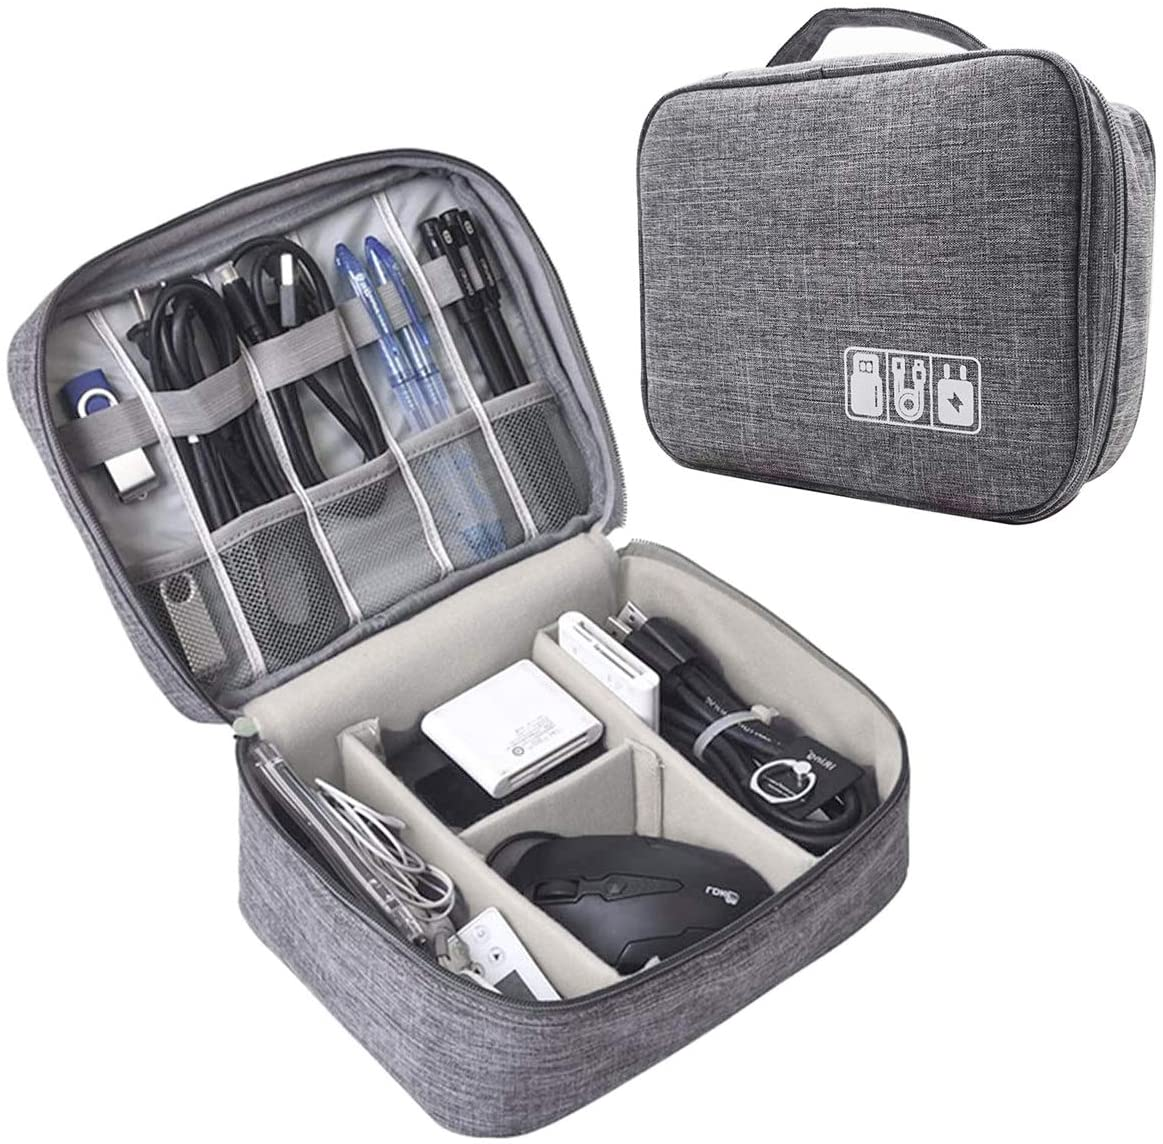 NISZON TRAVEL CABLE ORGANIZER BAG WATER RESISTANT PORTABLE ELECTRONICS ORGANIZER FOR USB CABLE CORD PHONE CHARGER HEADSET